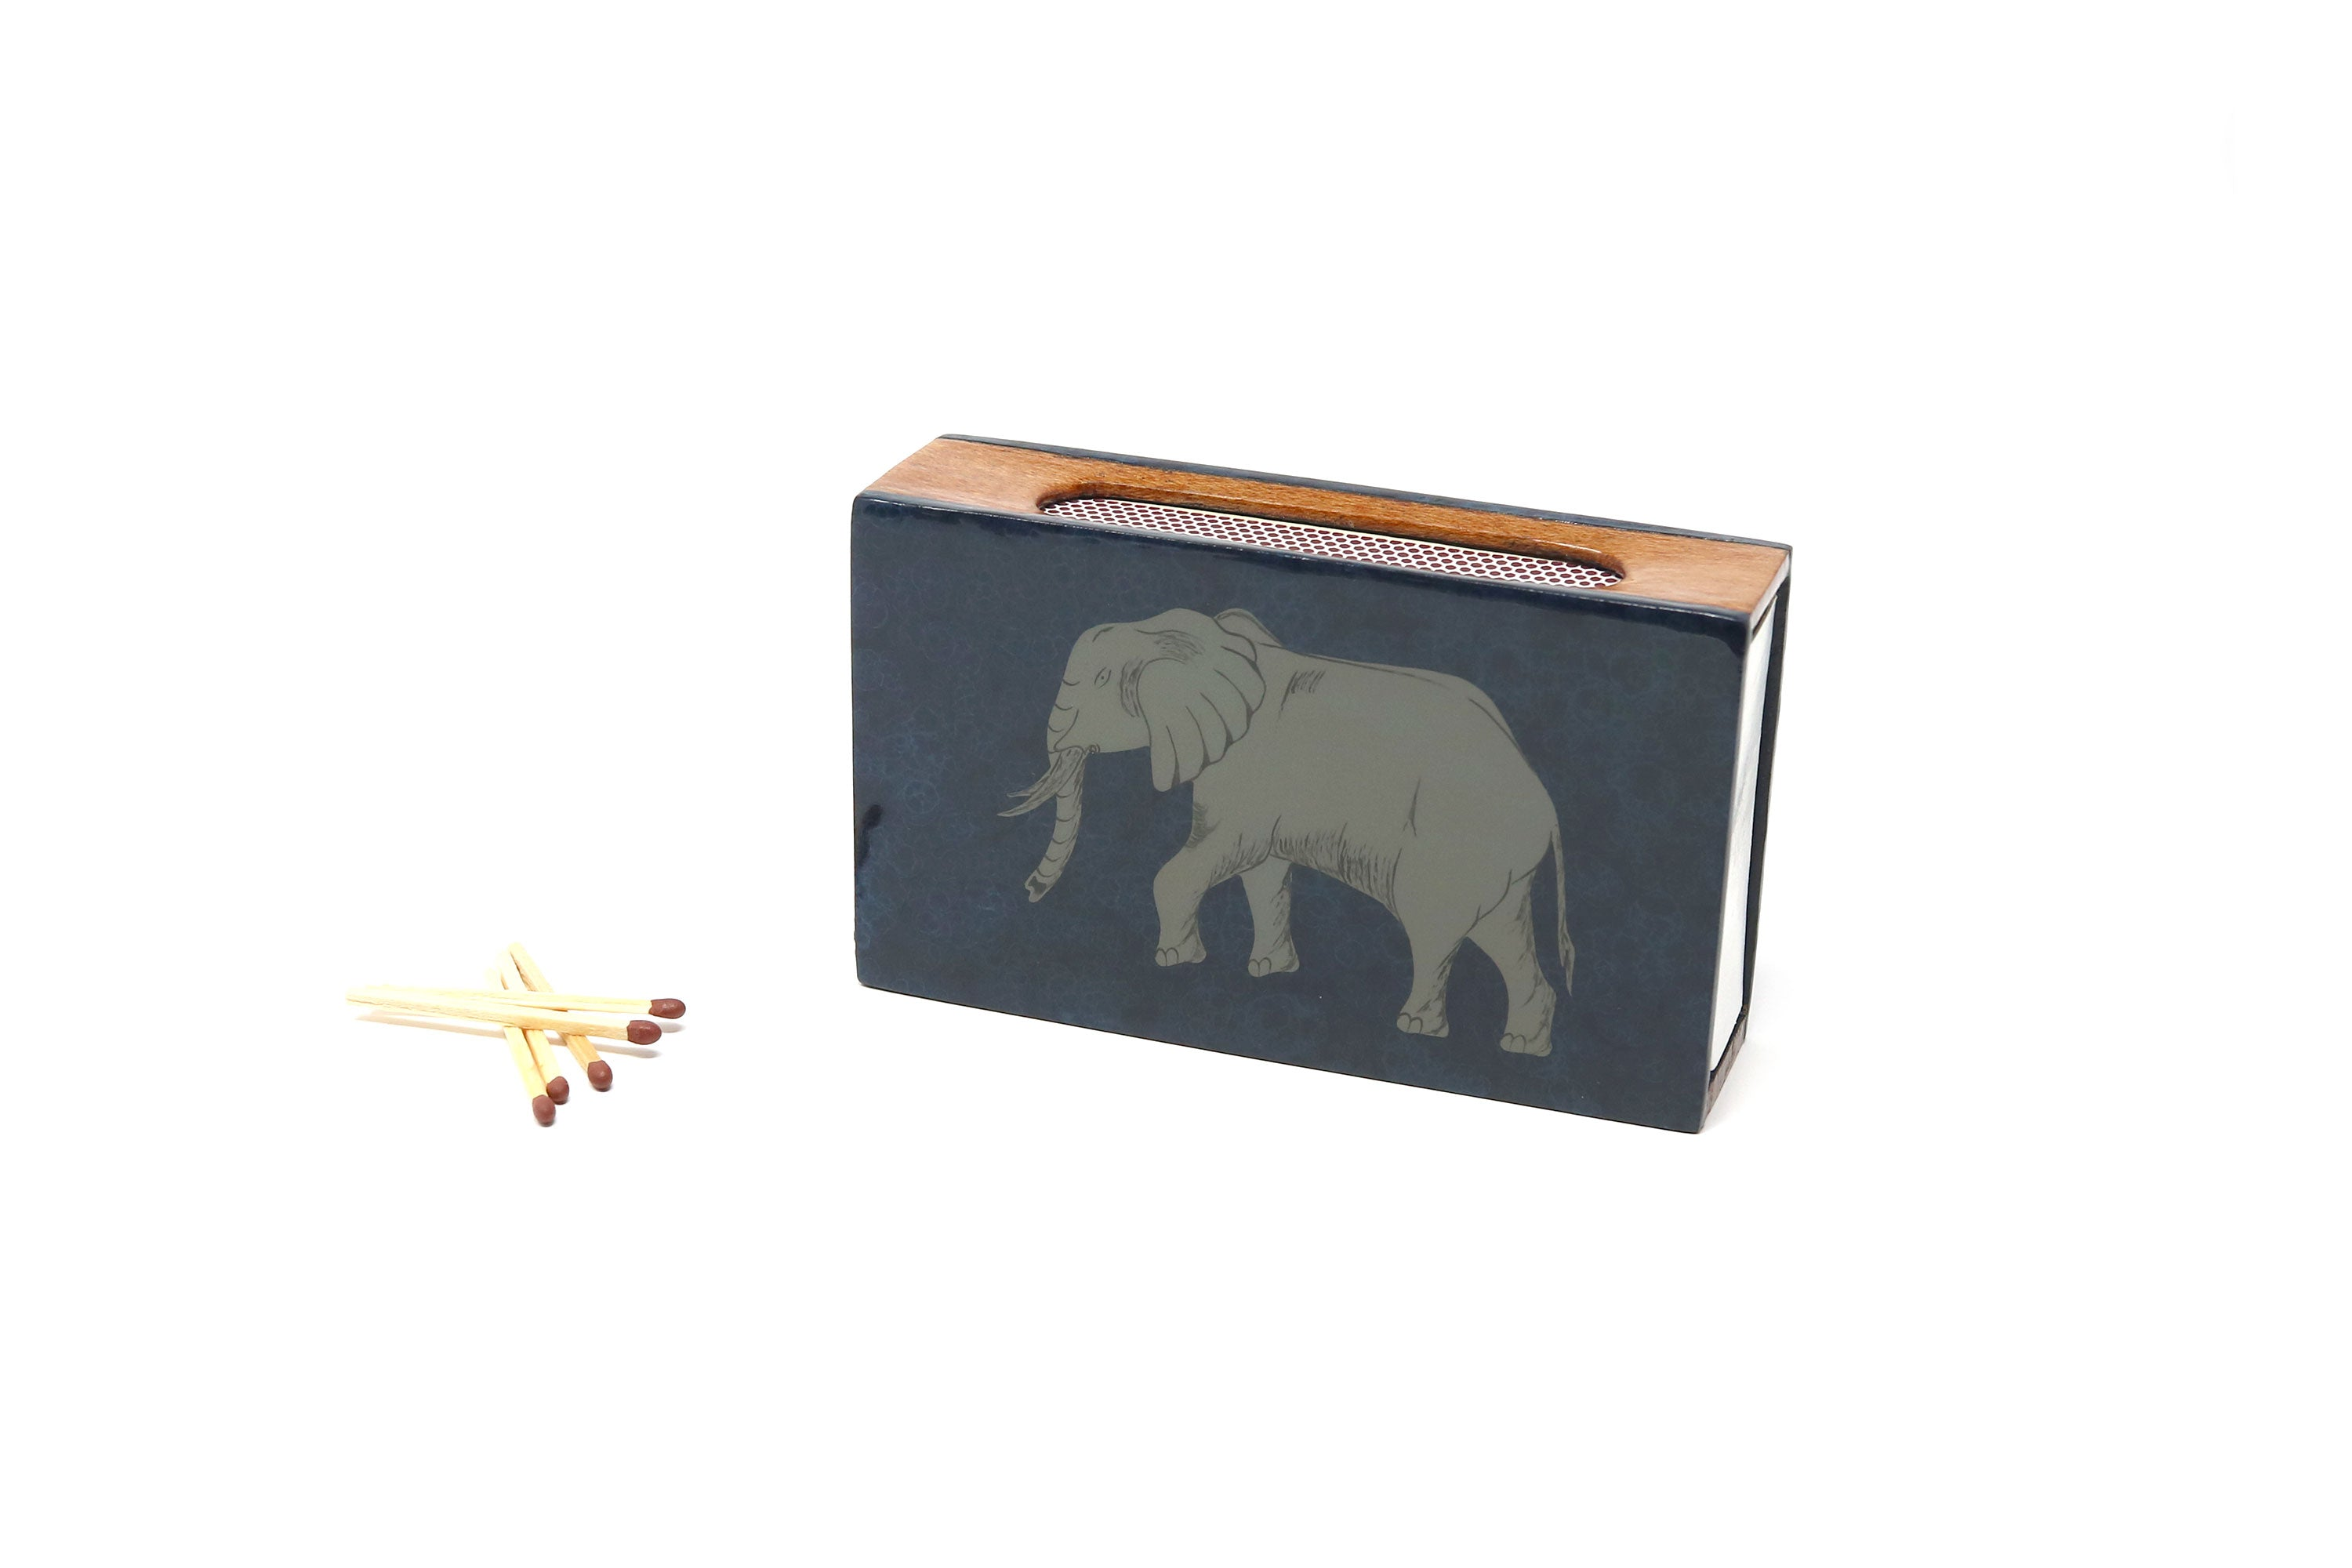 Elephant Matchbox Covers, Cobalt and Navy